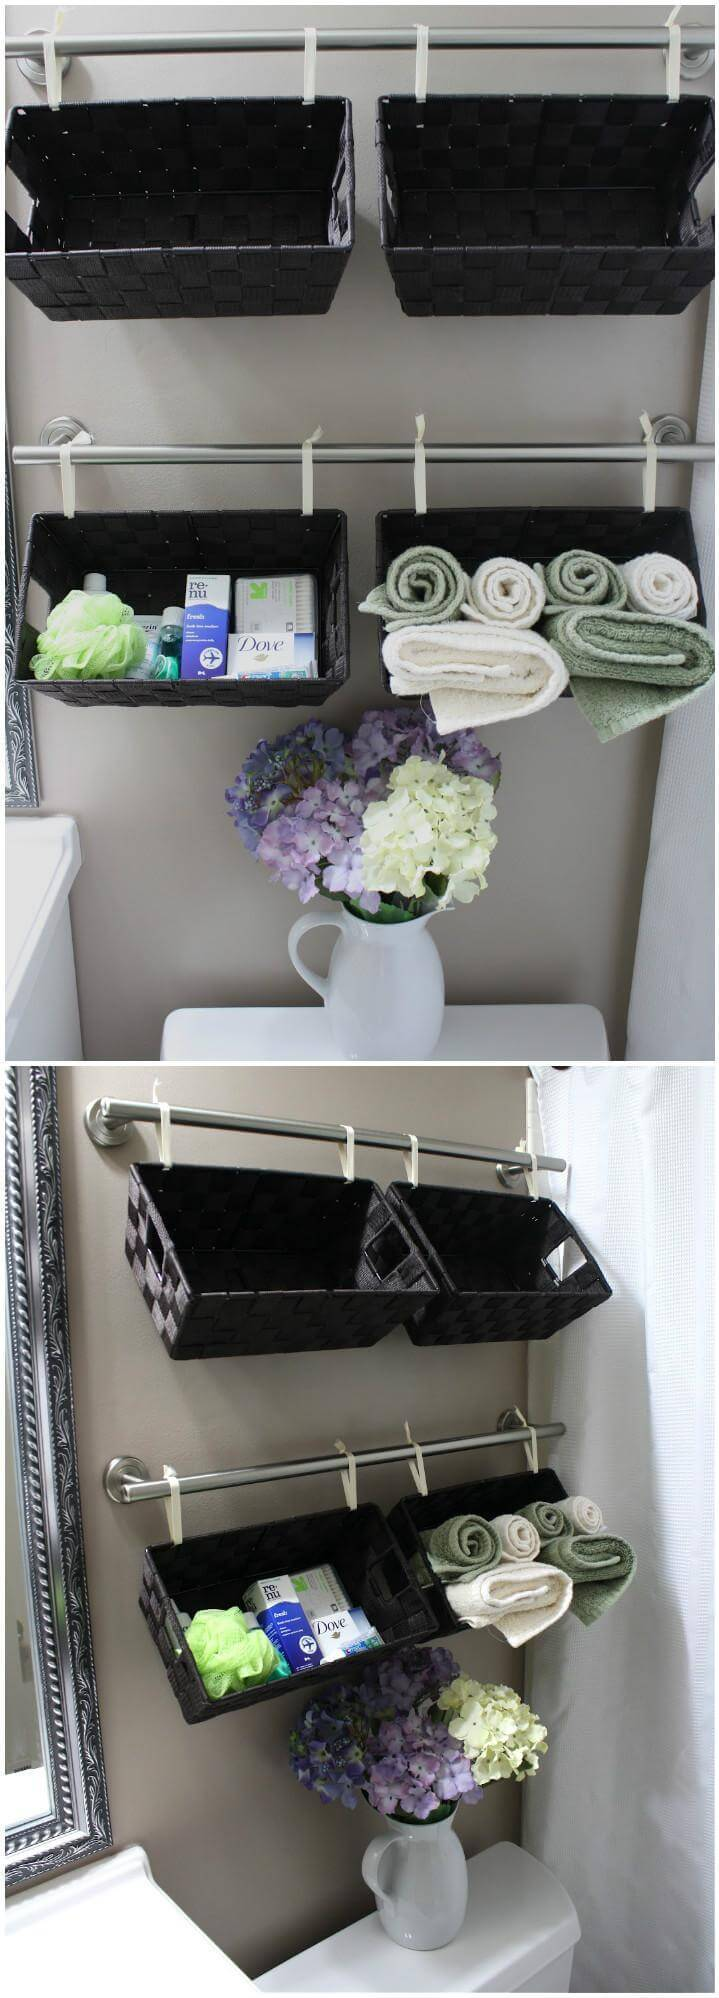 50 Diy Bathroom Projects To Remodel Step By Step Page 5 Of 6 Diy Crafts